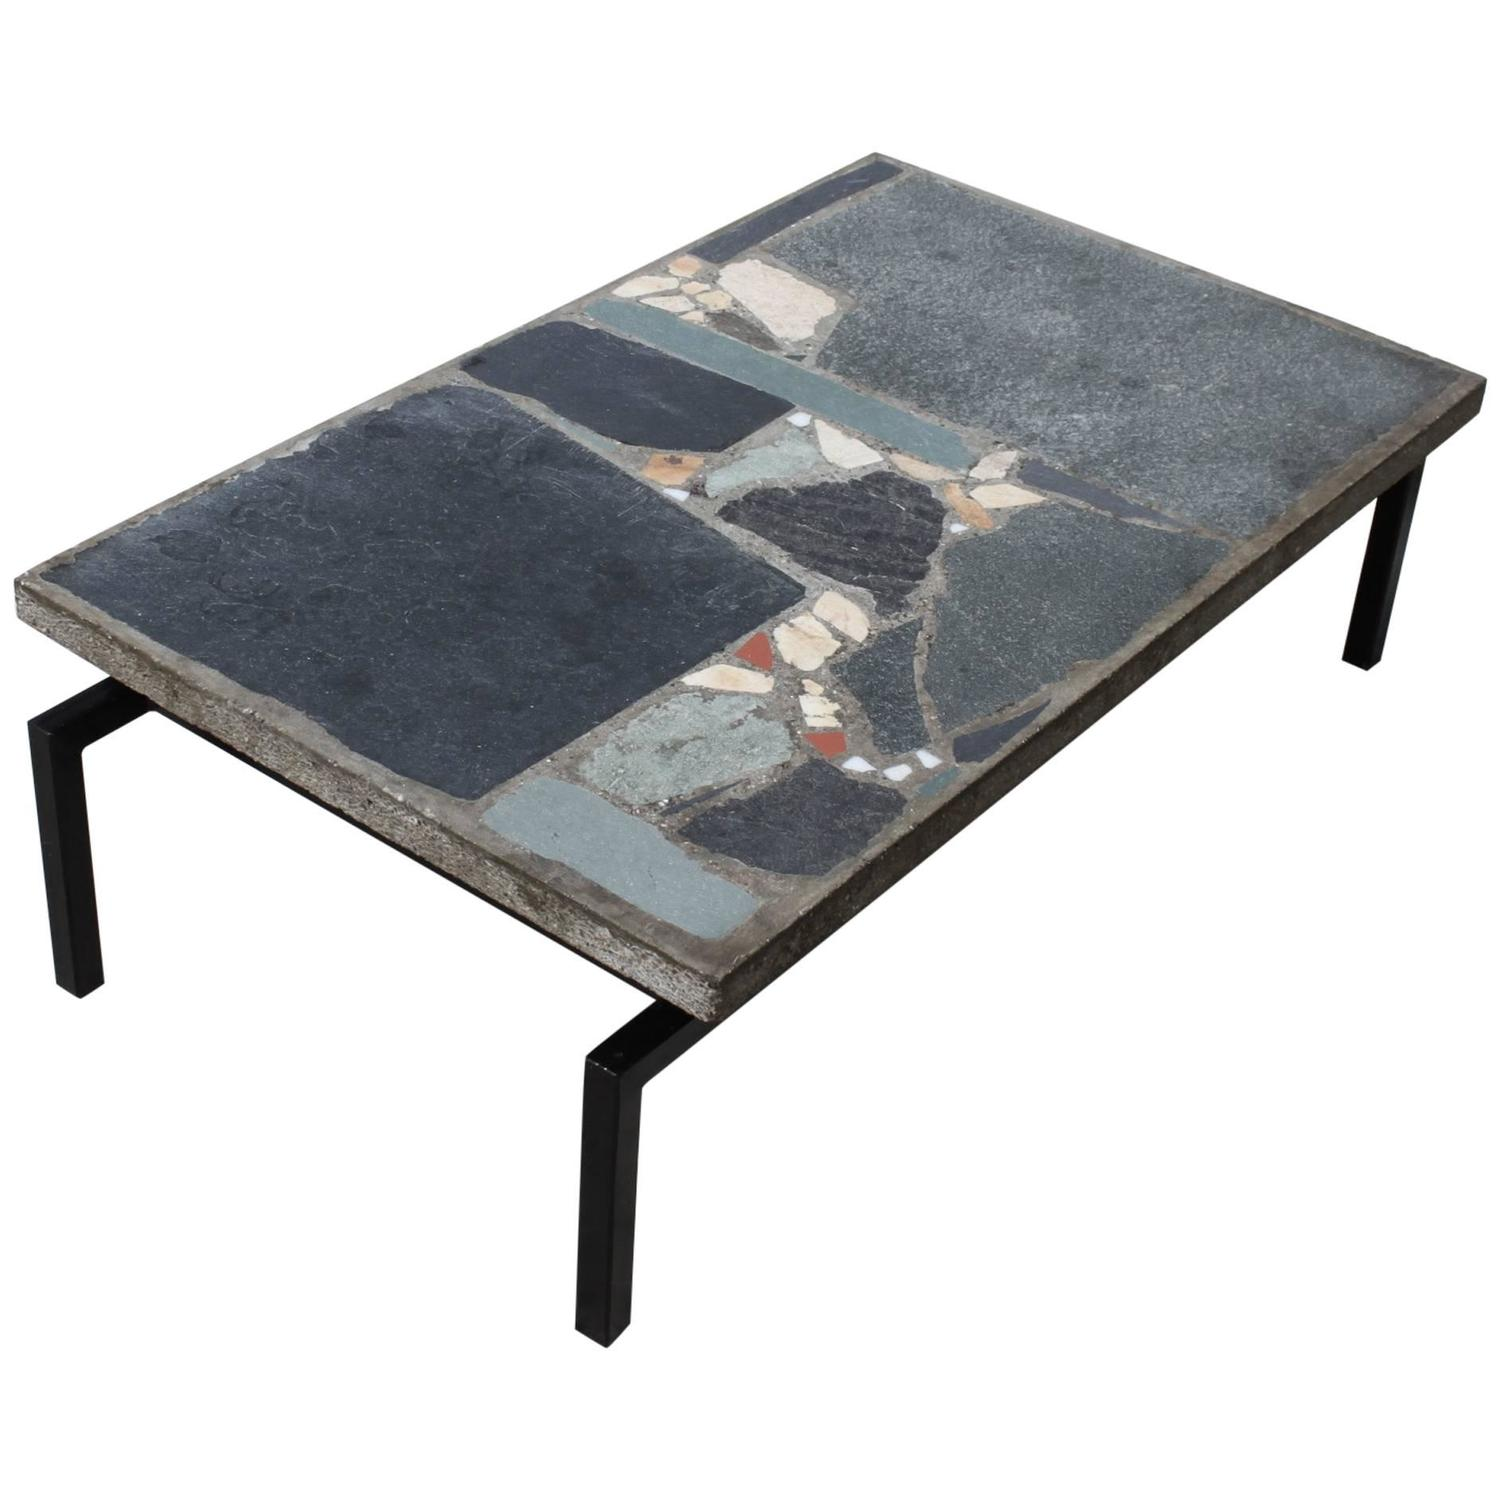 Brutalist Coffee Table by Paul Kingma with Mosaic Stones 1961 at